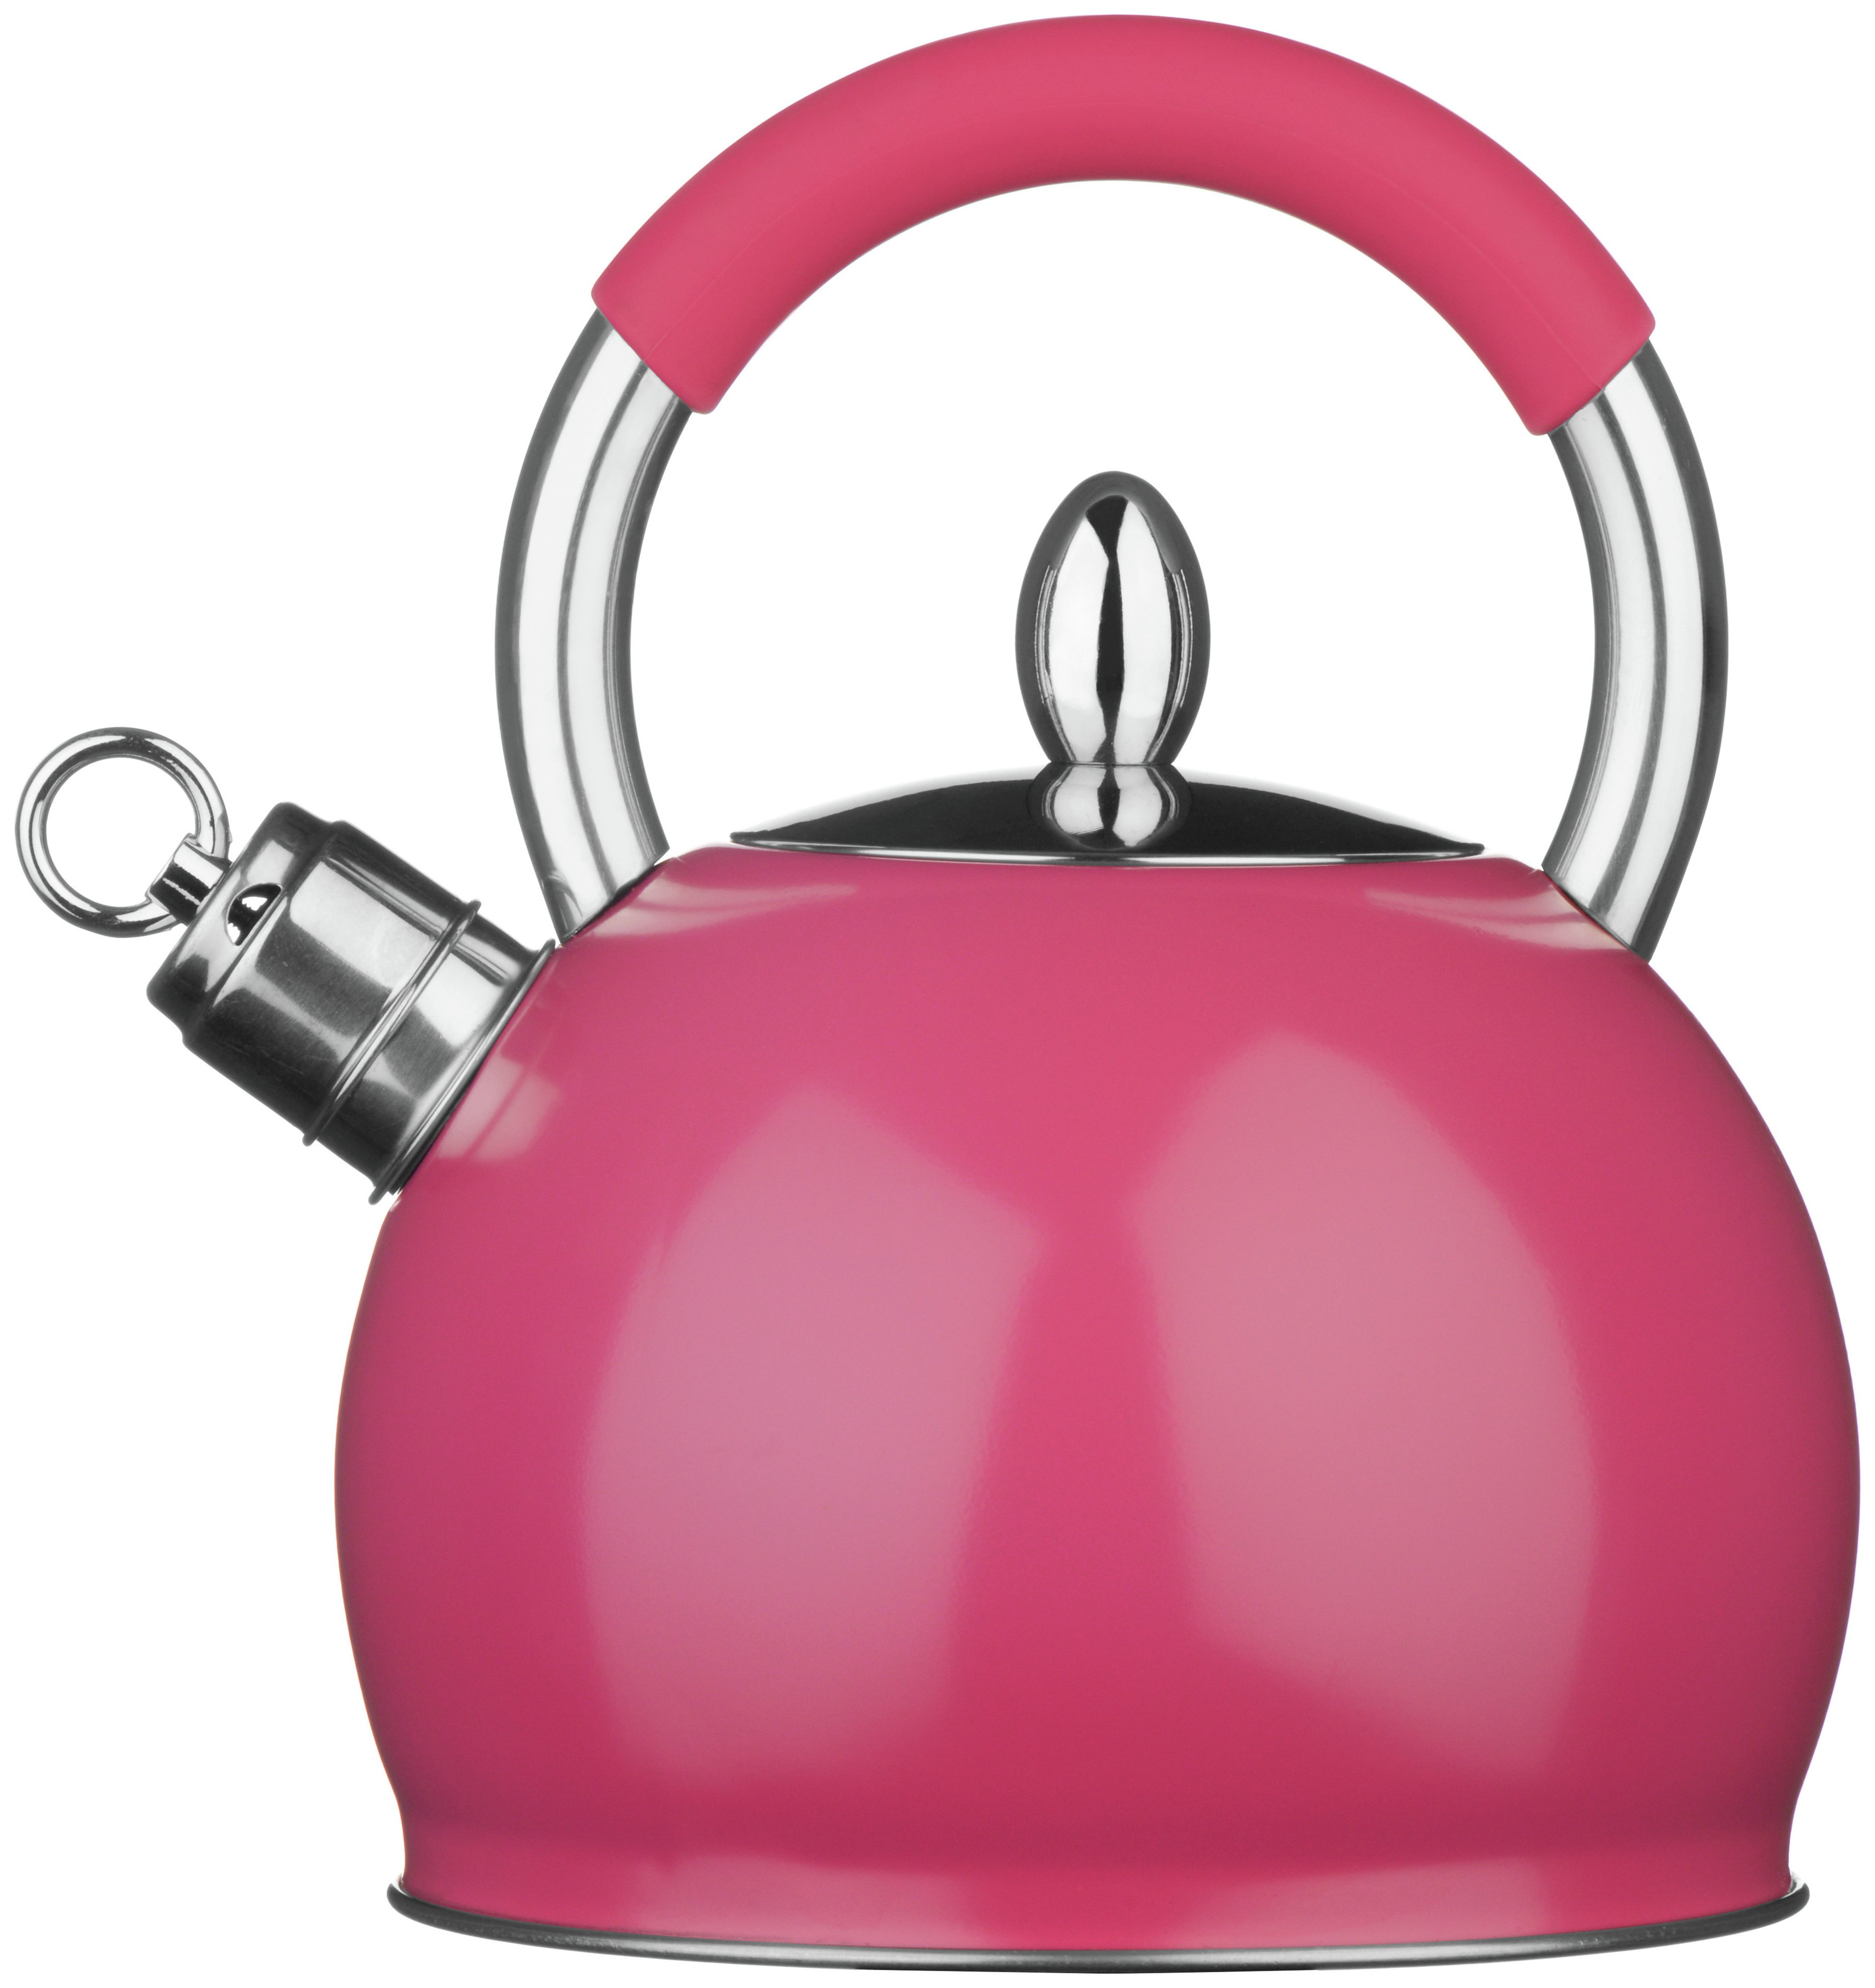 Premier Housewares Stove Top Whistling Kettle - Pink